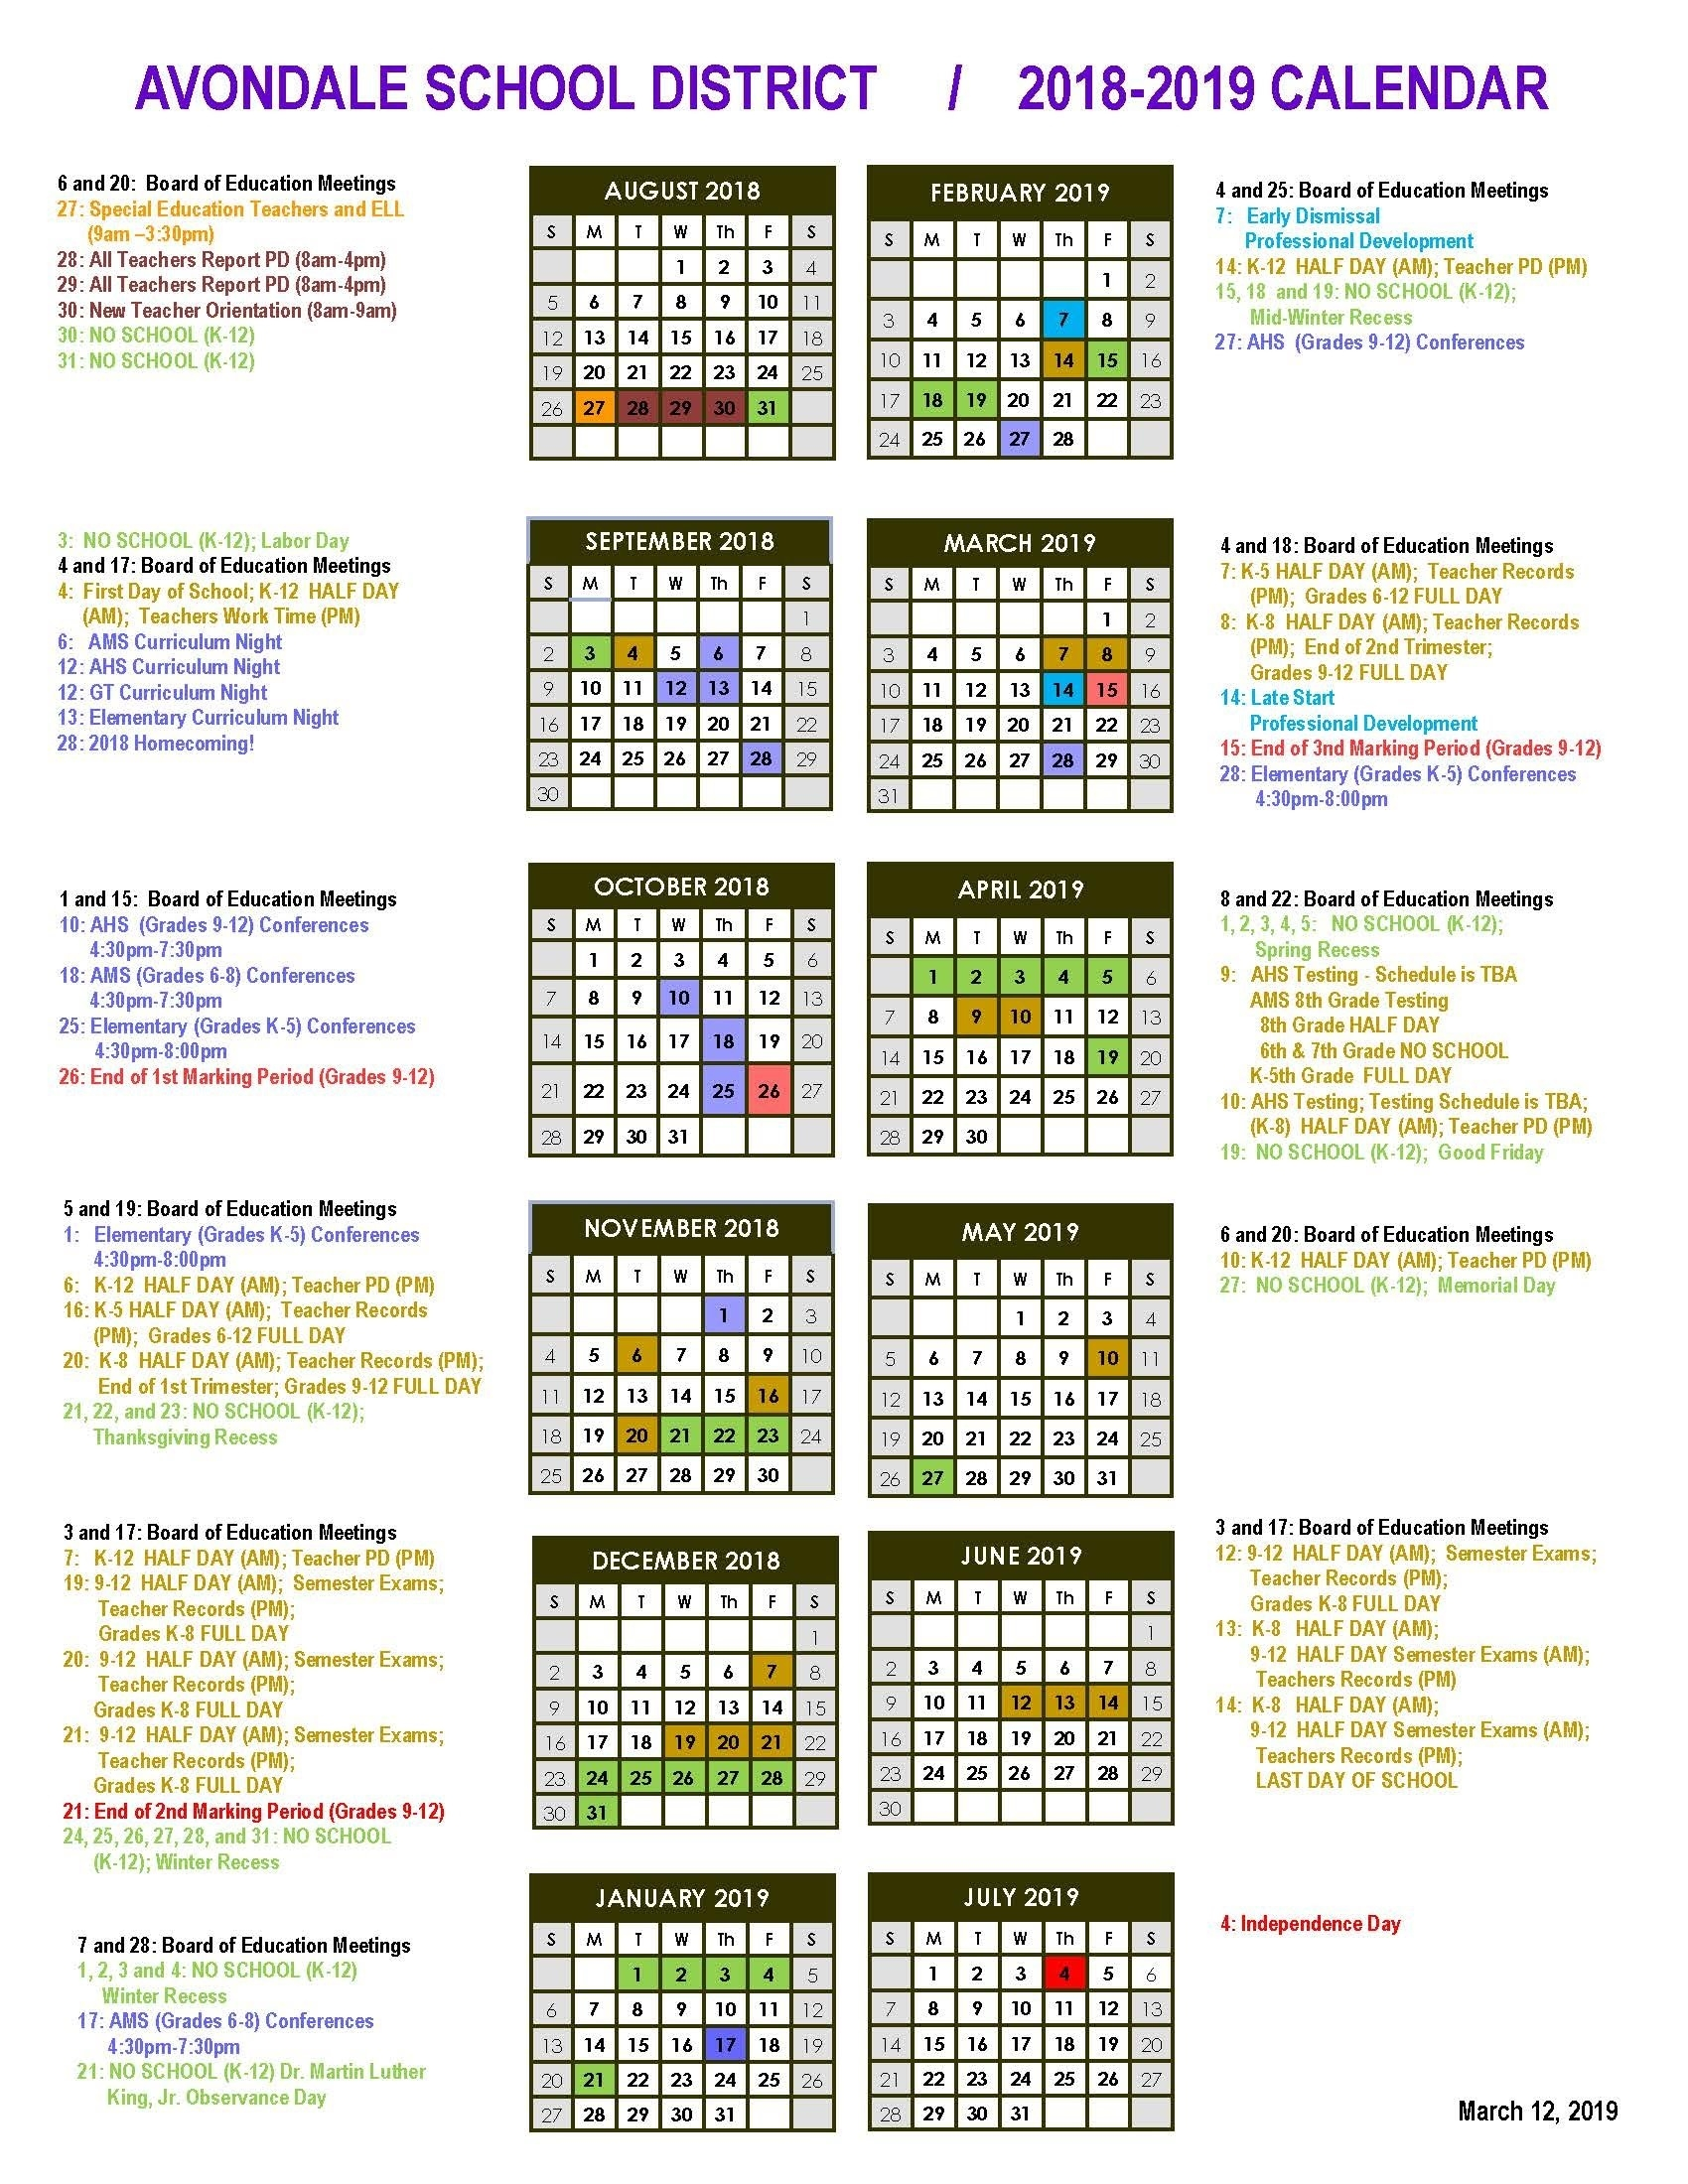 District Calendar - Avondale School District_Busy B School Year Calendar